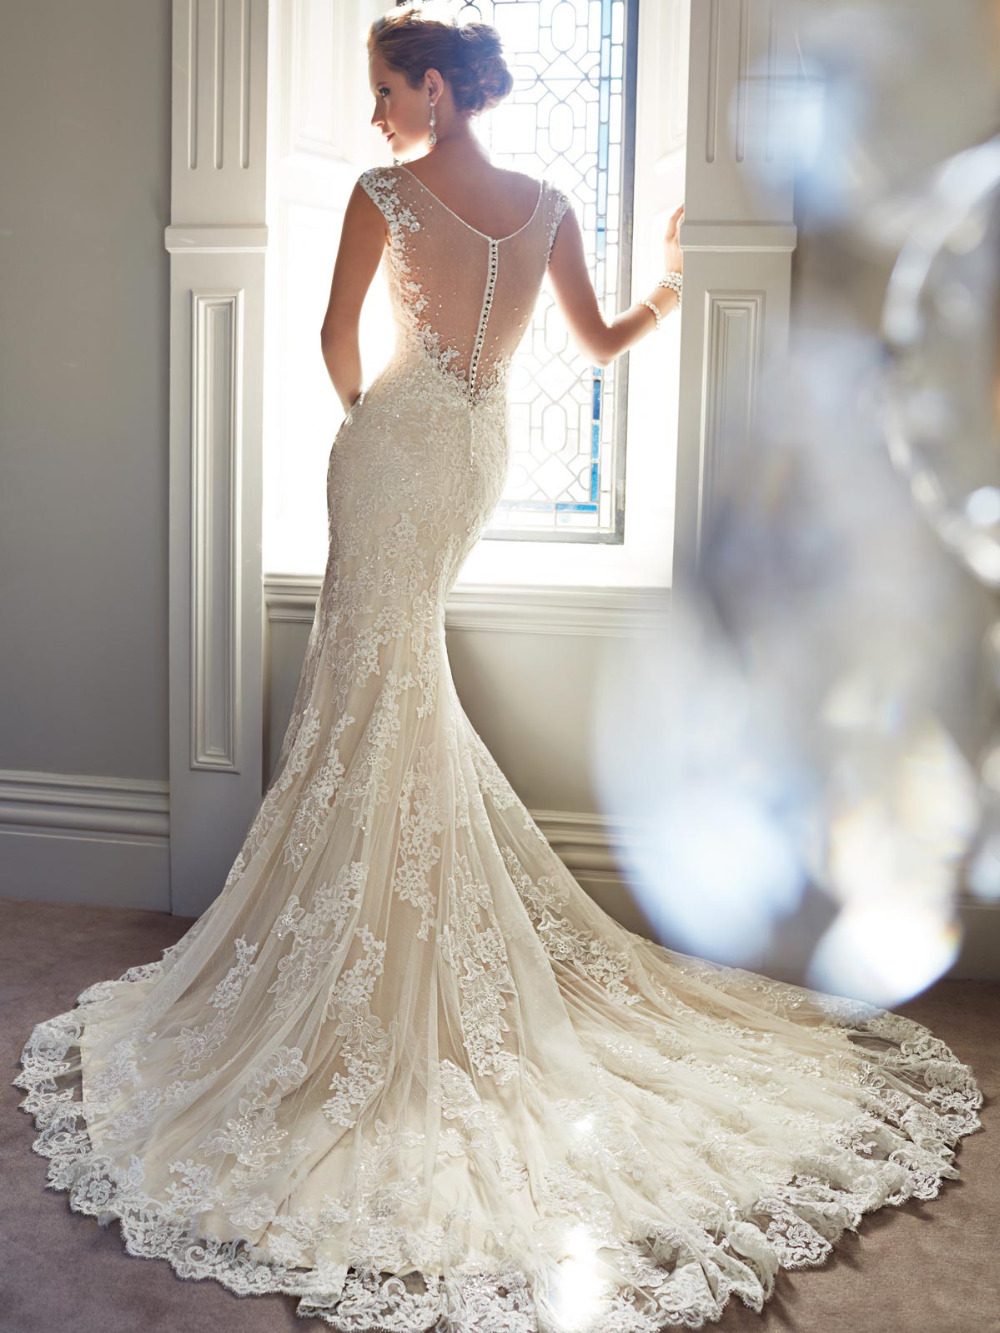 Vintage Wedding Dress 2015 Sweetangel Plunging Neckline Illusion Sheer Back Long Tail Lace Mermaid Bridal In Dresses From